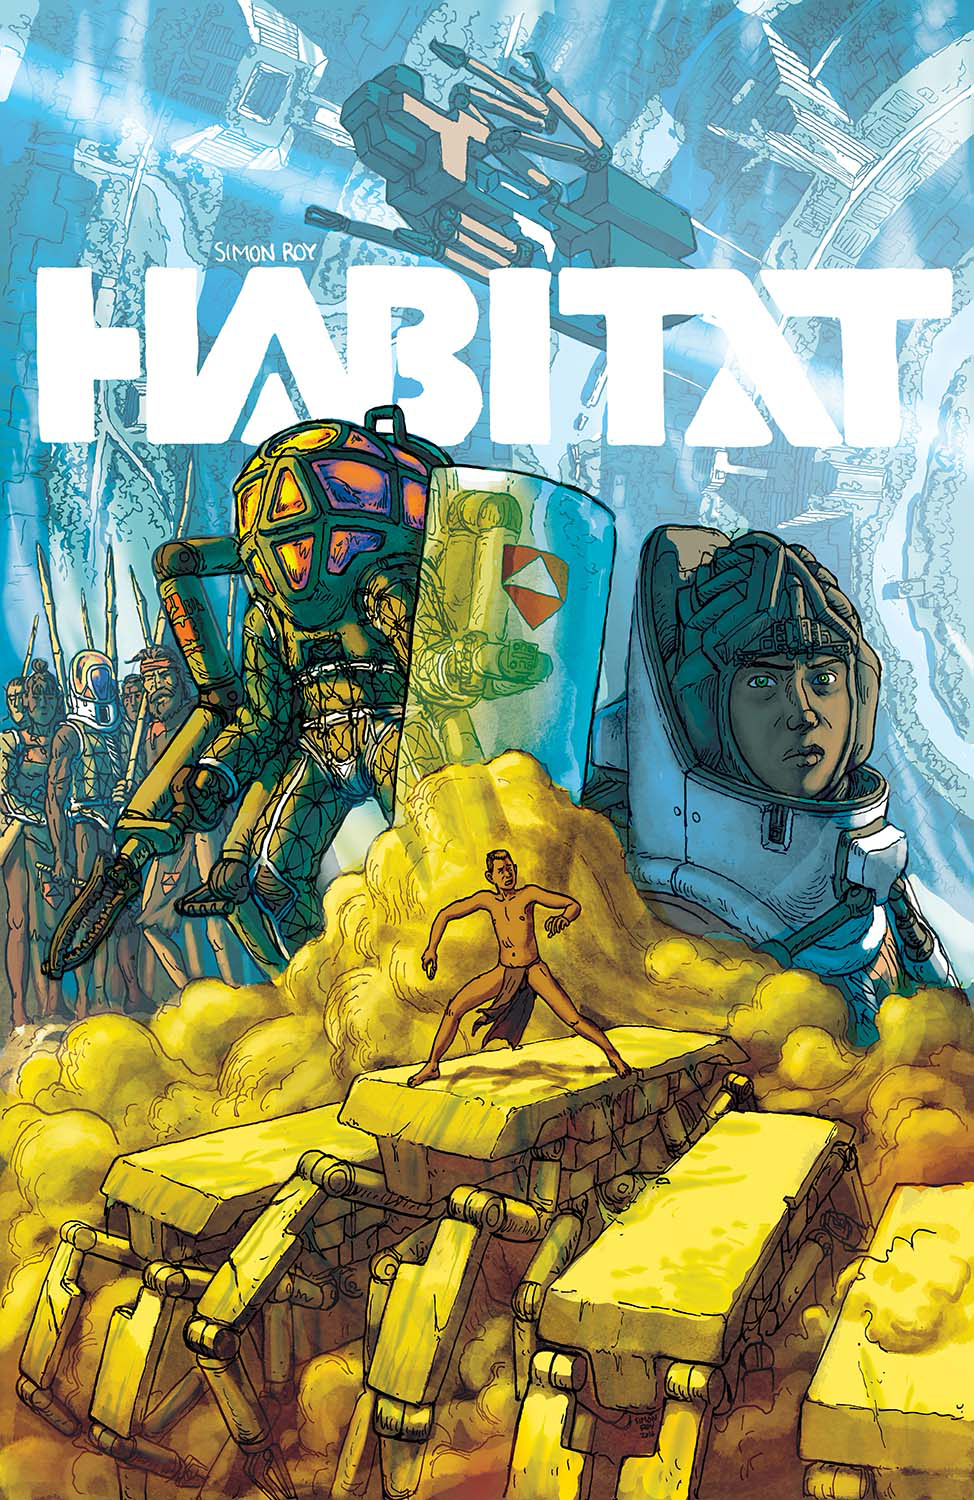 HABITAT TP (AUG160697) (MR)